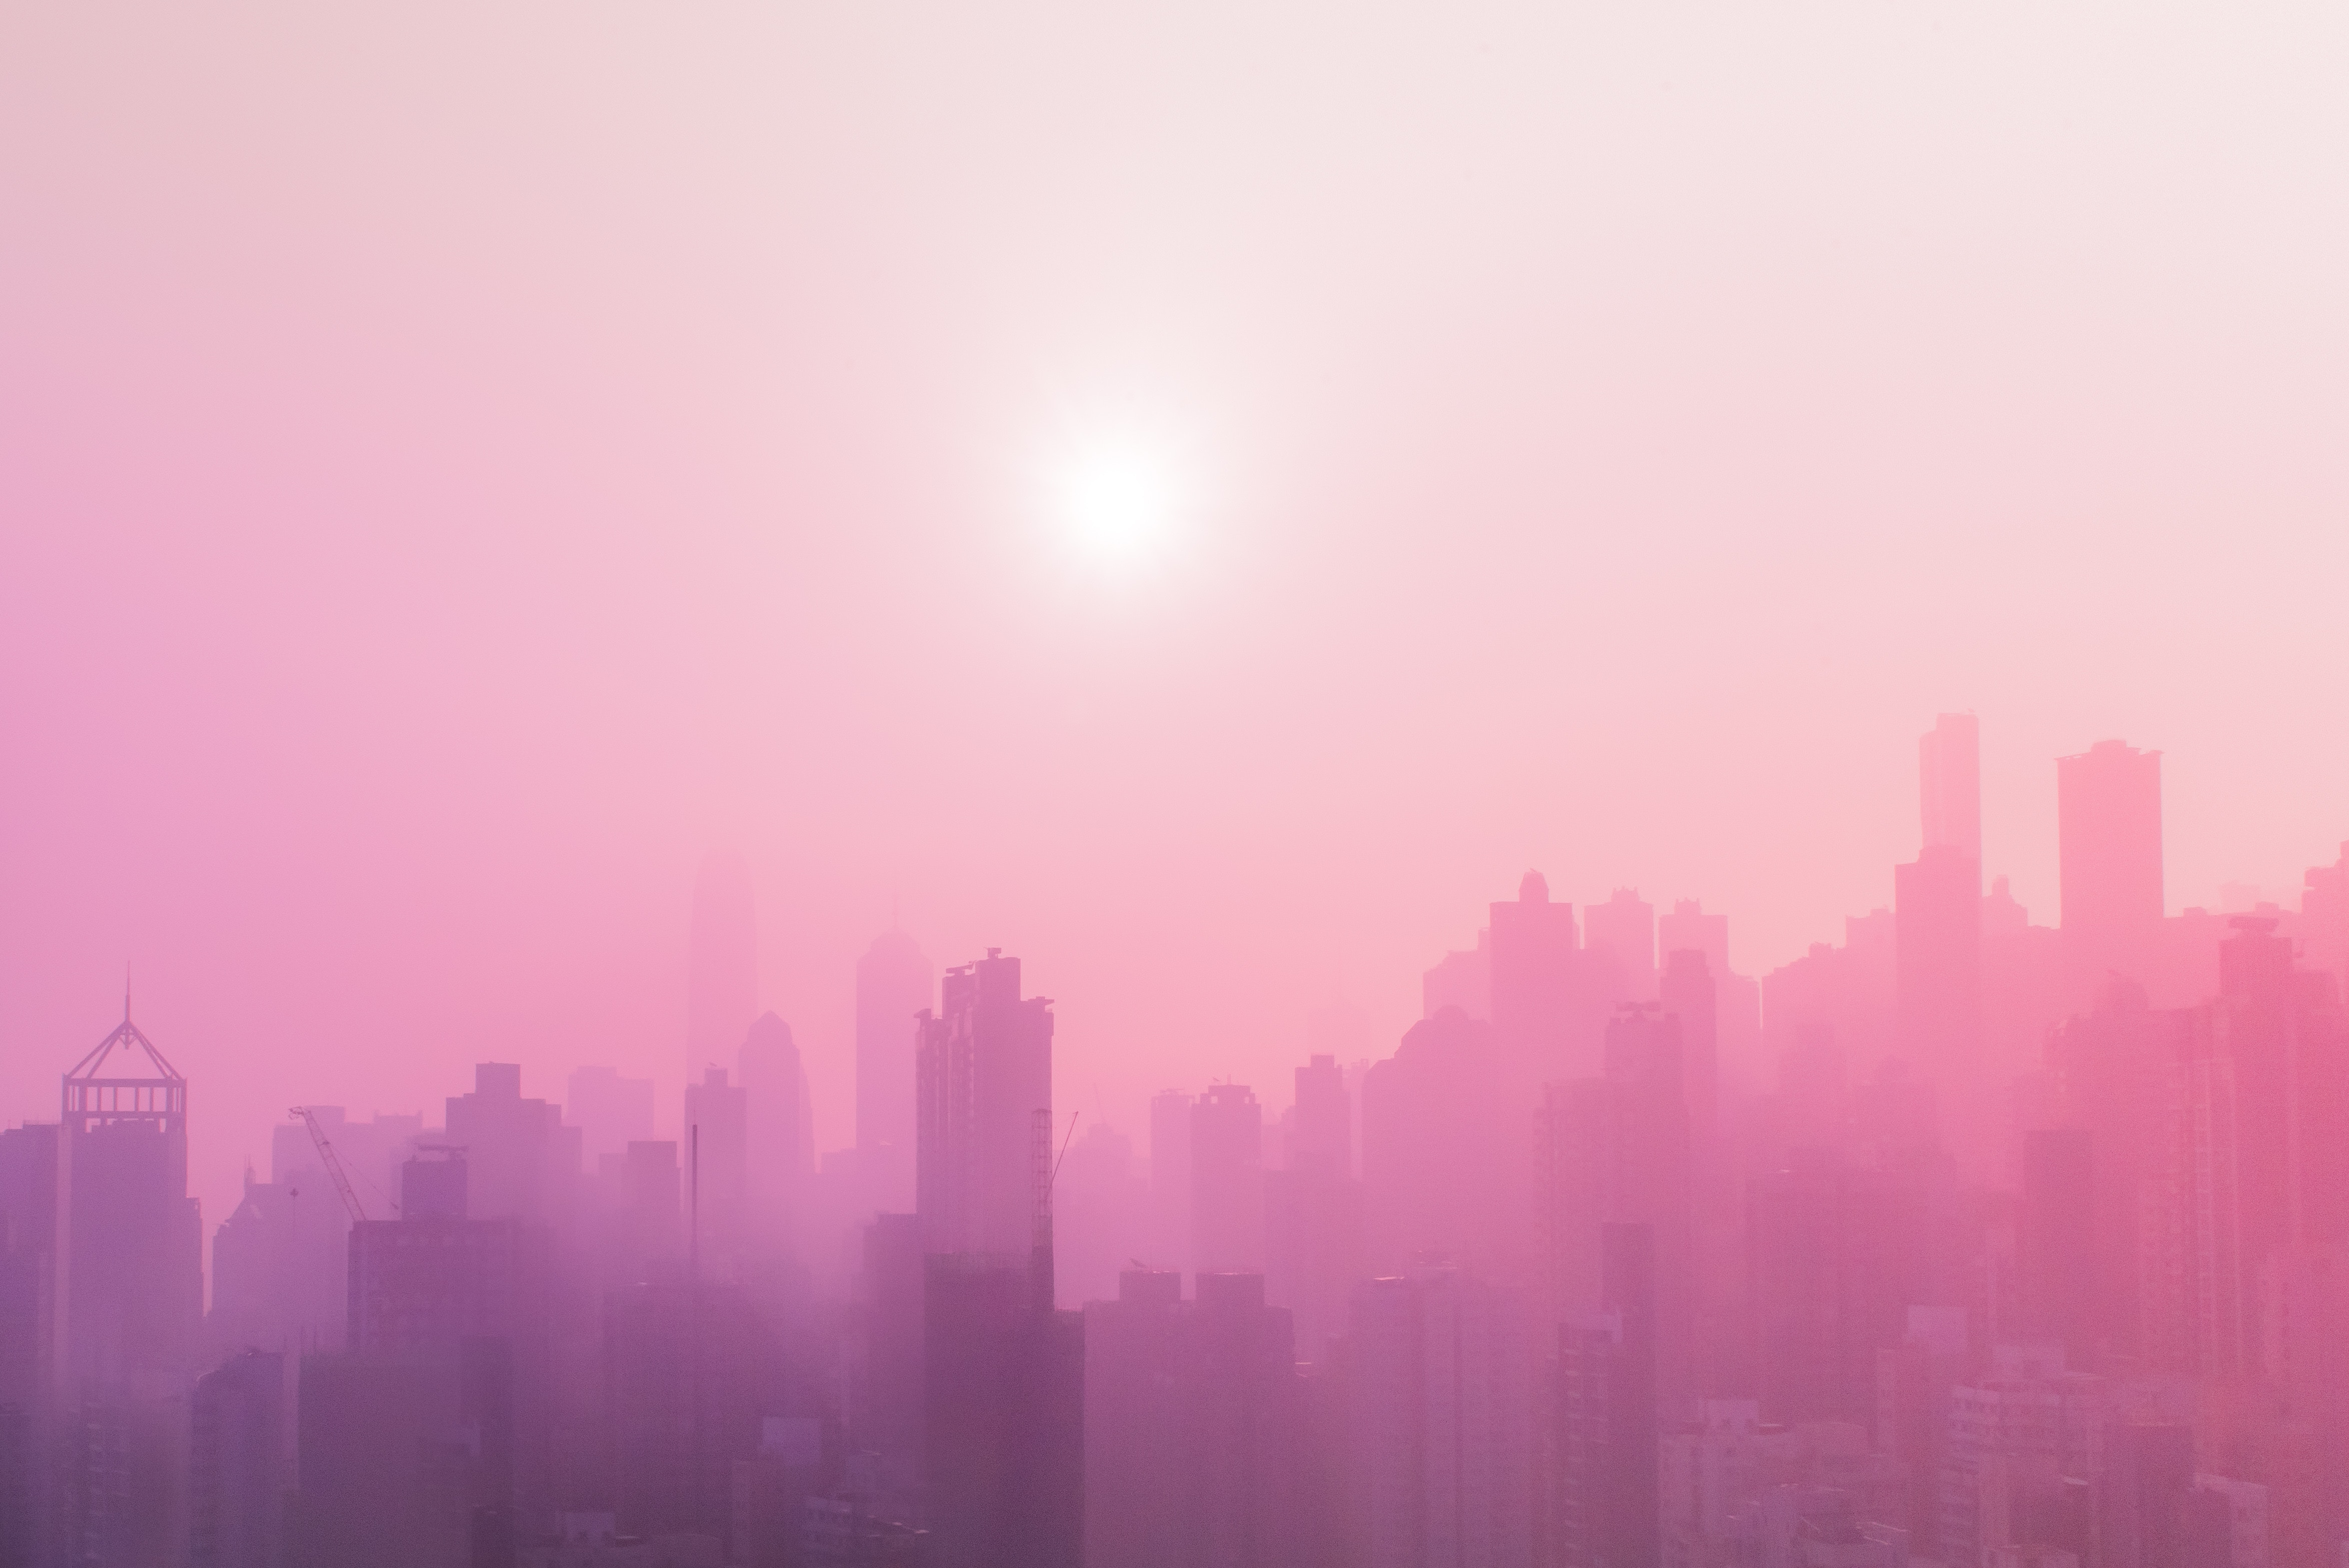 65564 download wallpaper City, Fog, Building, Skyscrapers, Urban Landscape, Cityscape, Cities, Sun screensavers and pictures for free